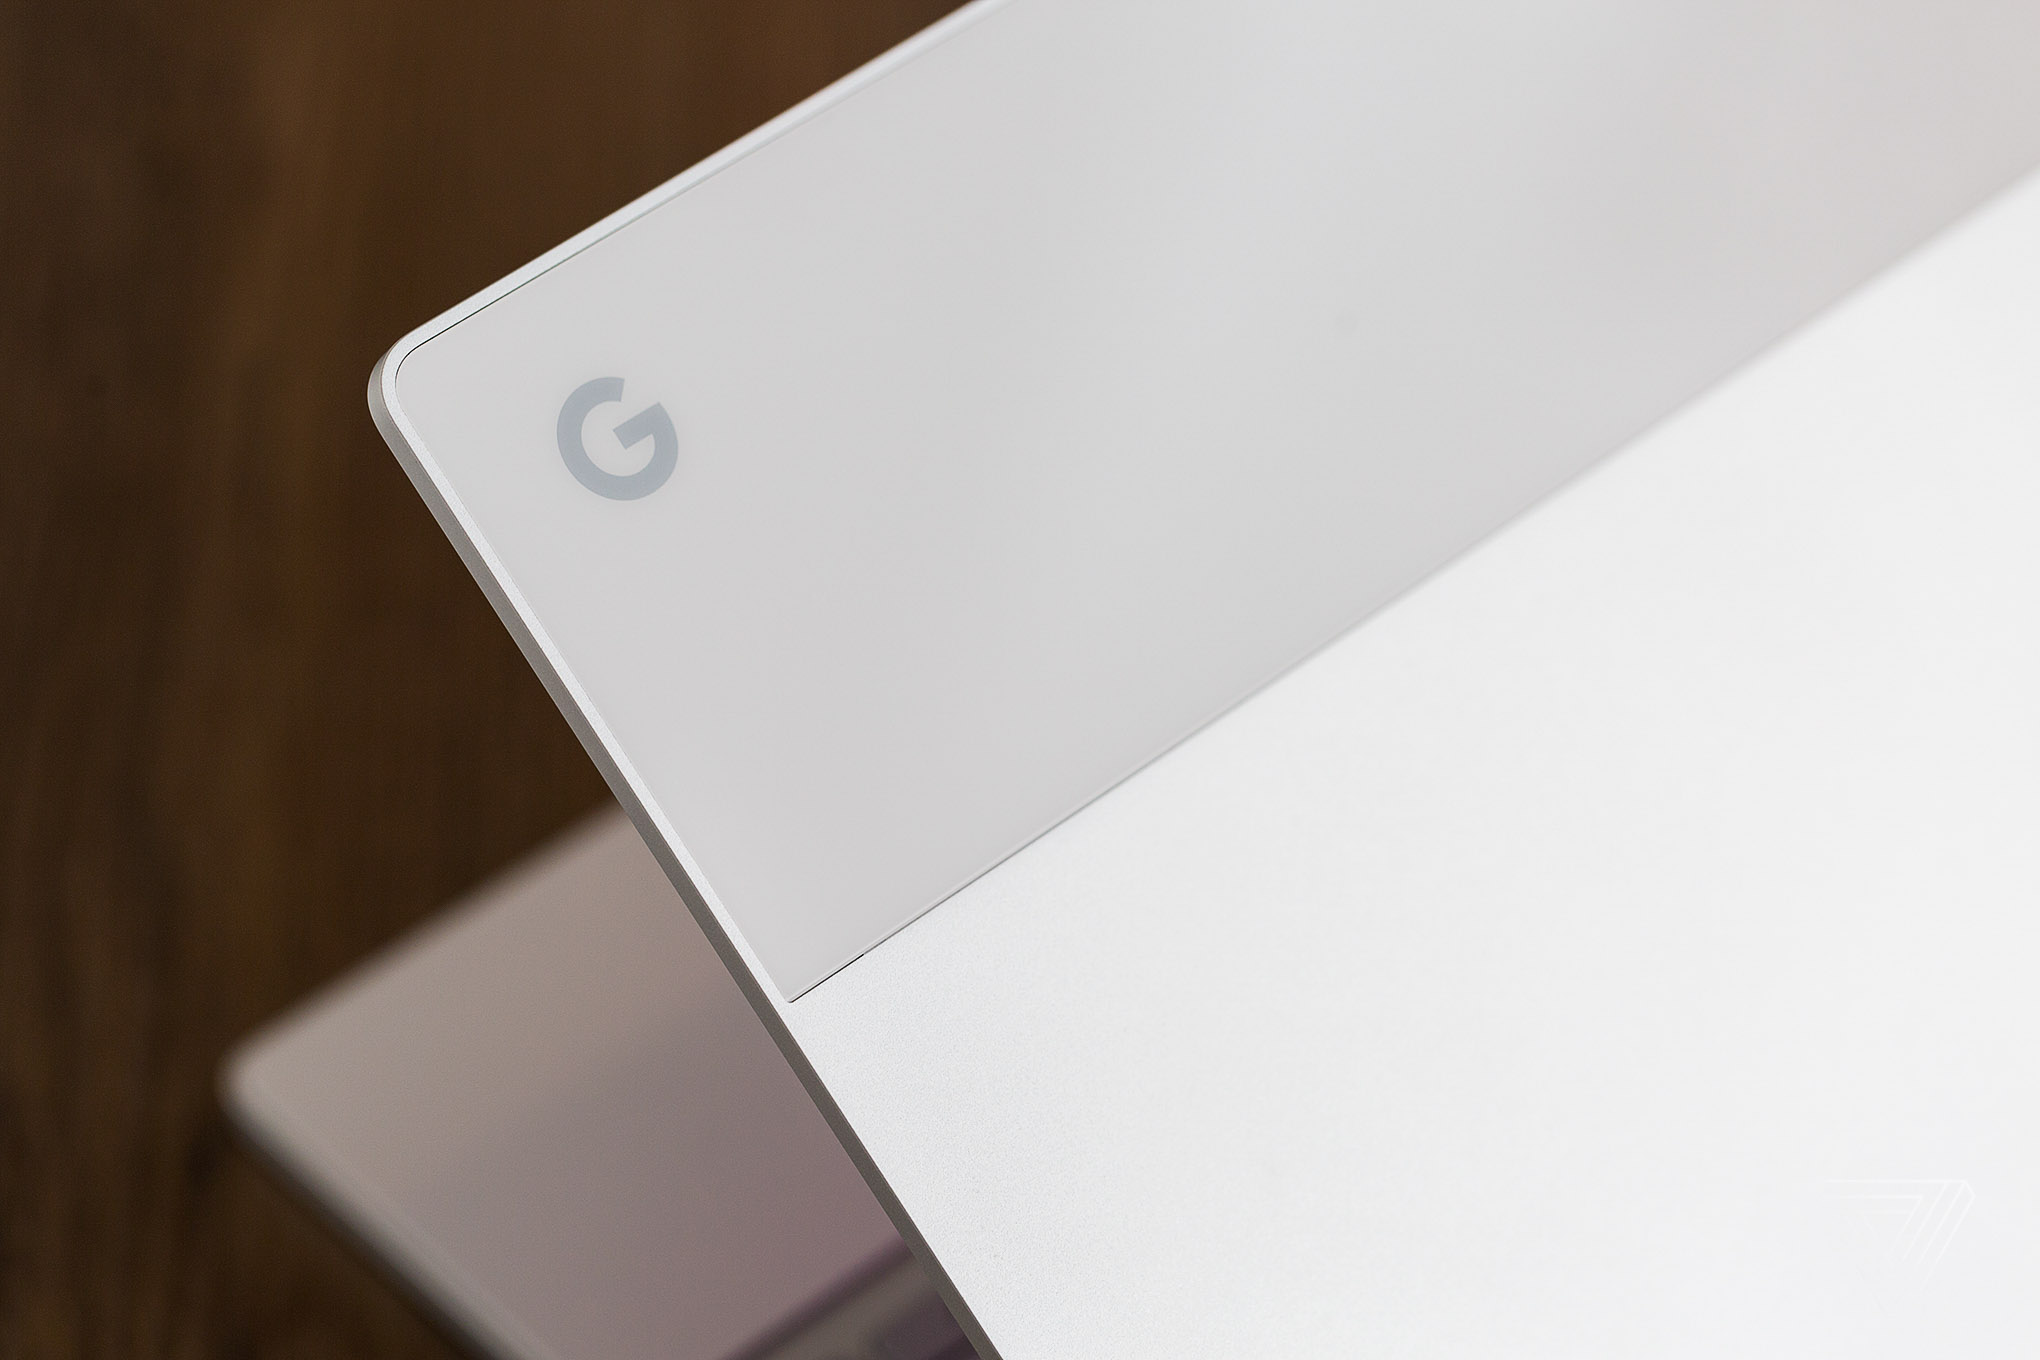 Google Pixelbook review: emperor of Chrome - The Verge